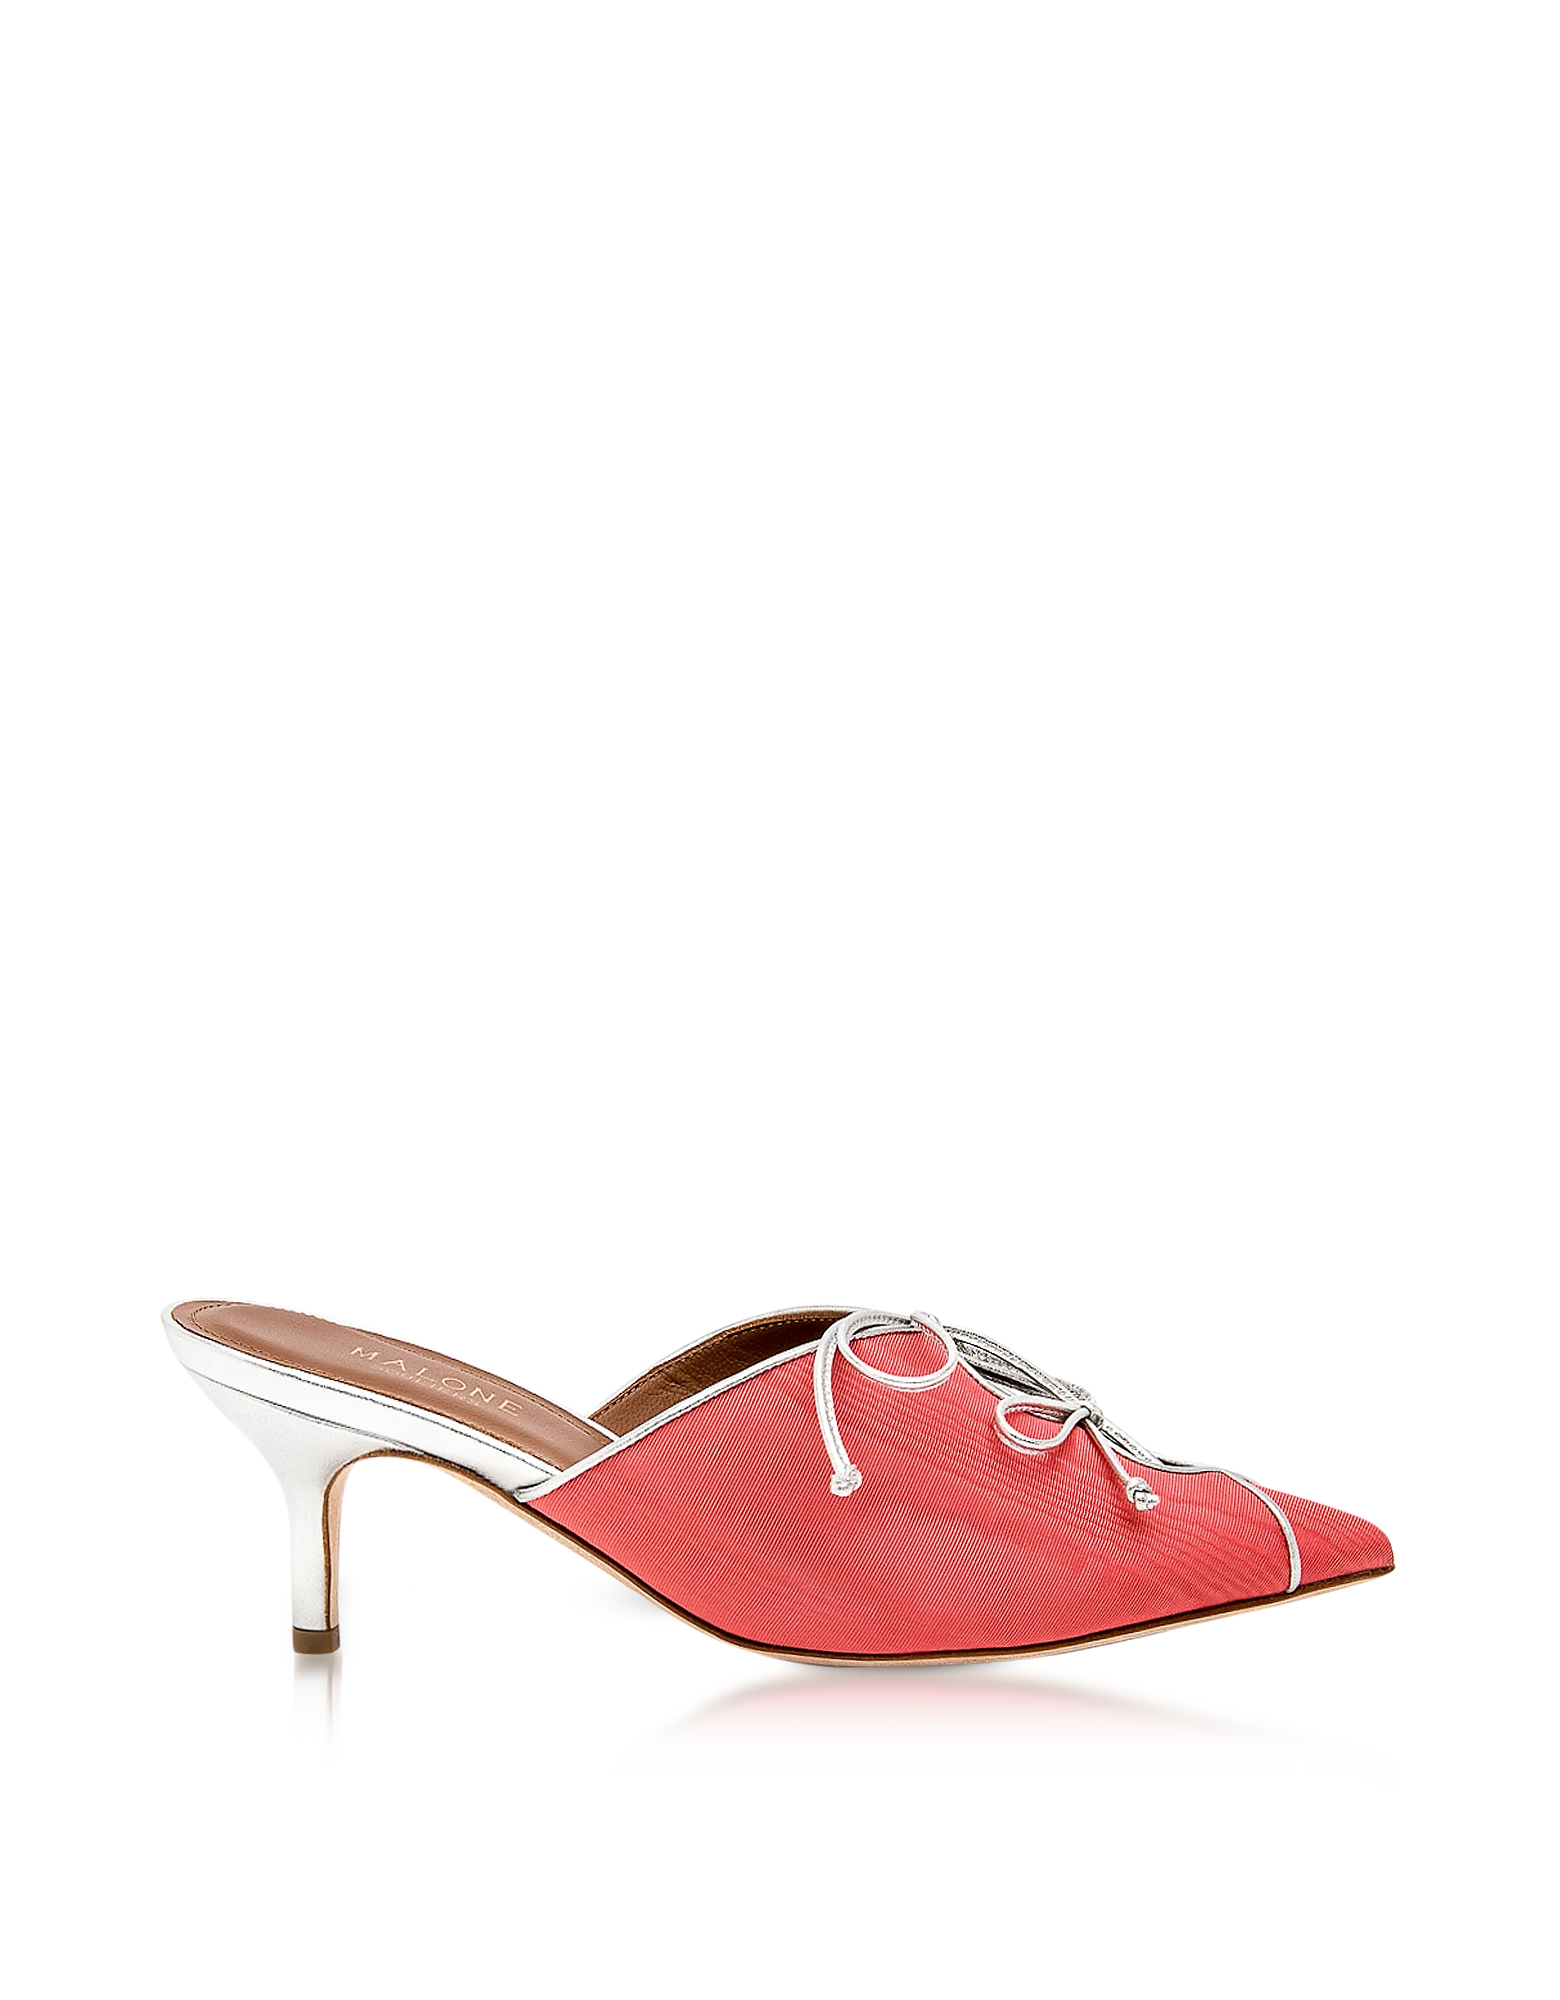 Malone Souliers Shoes, Victoria Hibiscus Moire Fabric and Silver Metallic Nappa Leather Mid Heel Mul